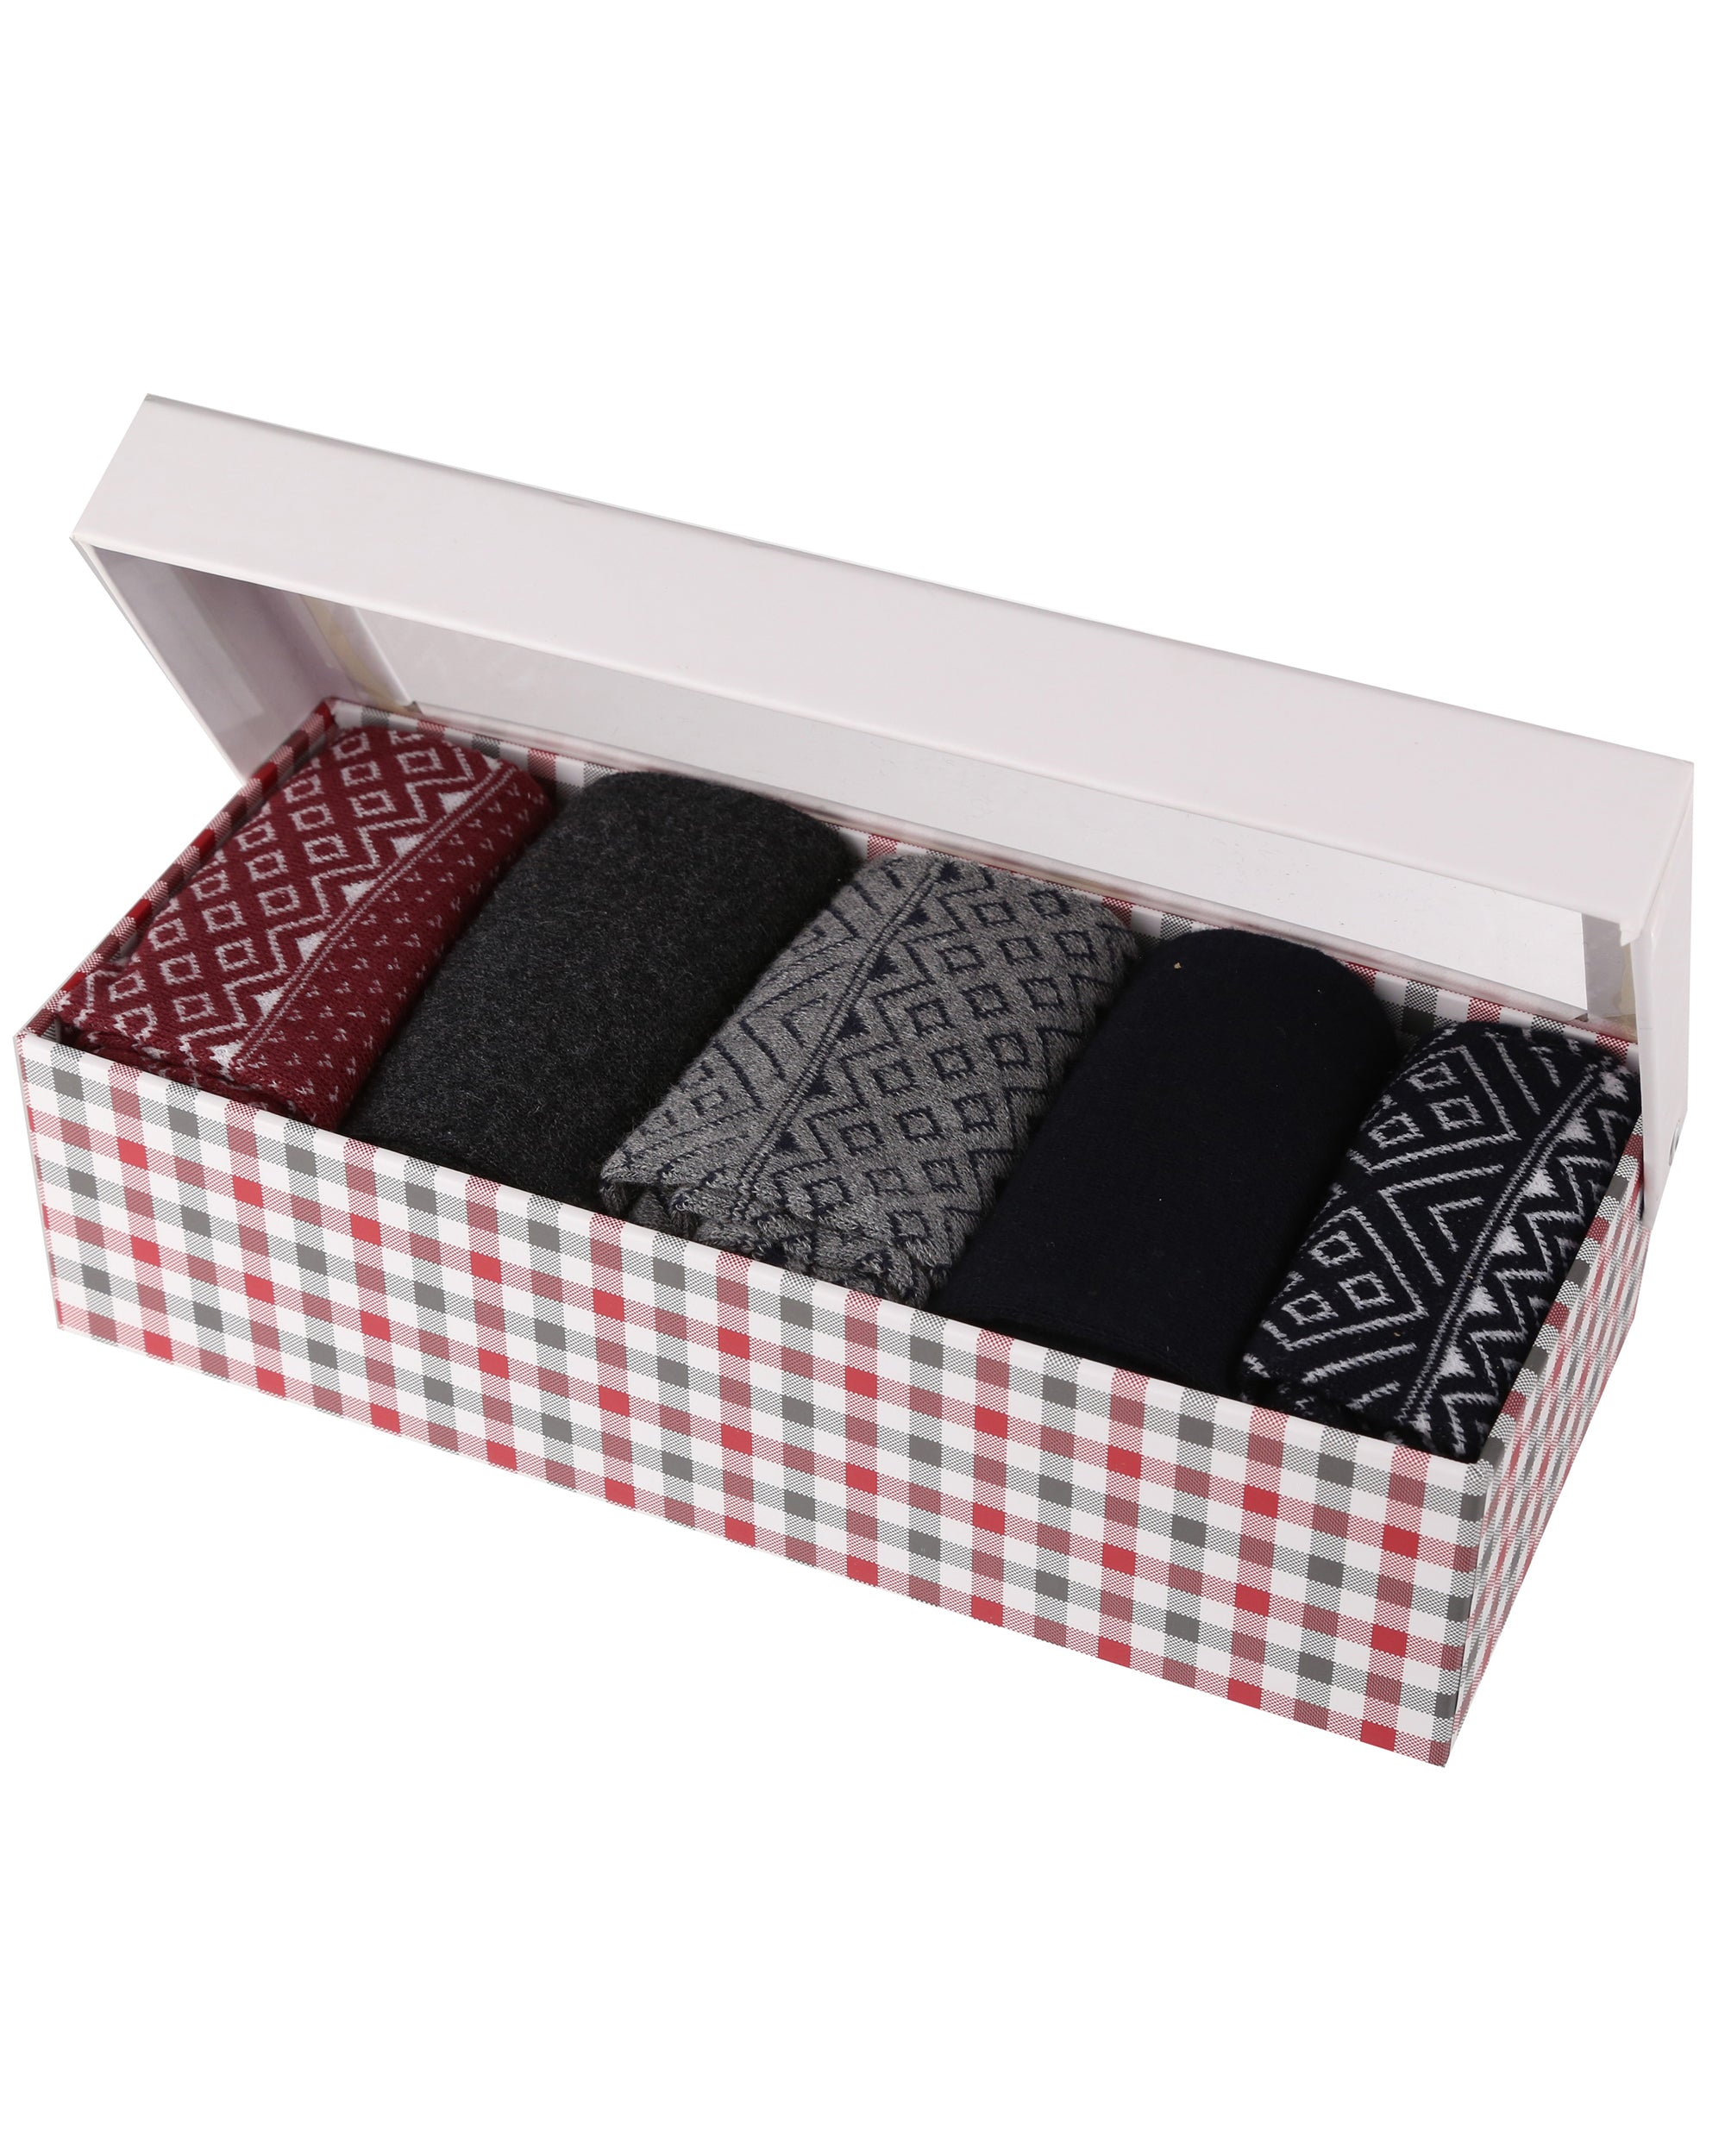 Gainsborough Men's Gift Socks 5-Pack - Grey Fairisle